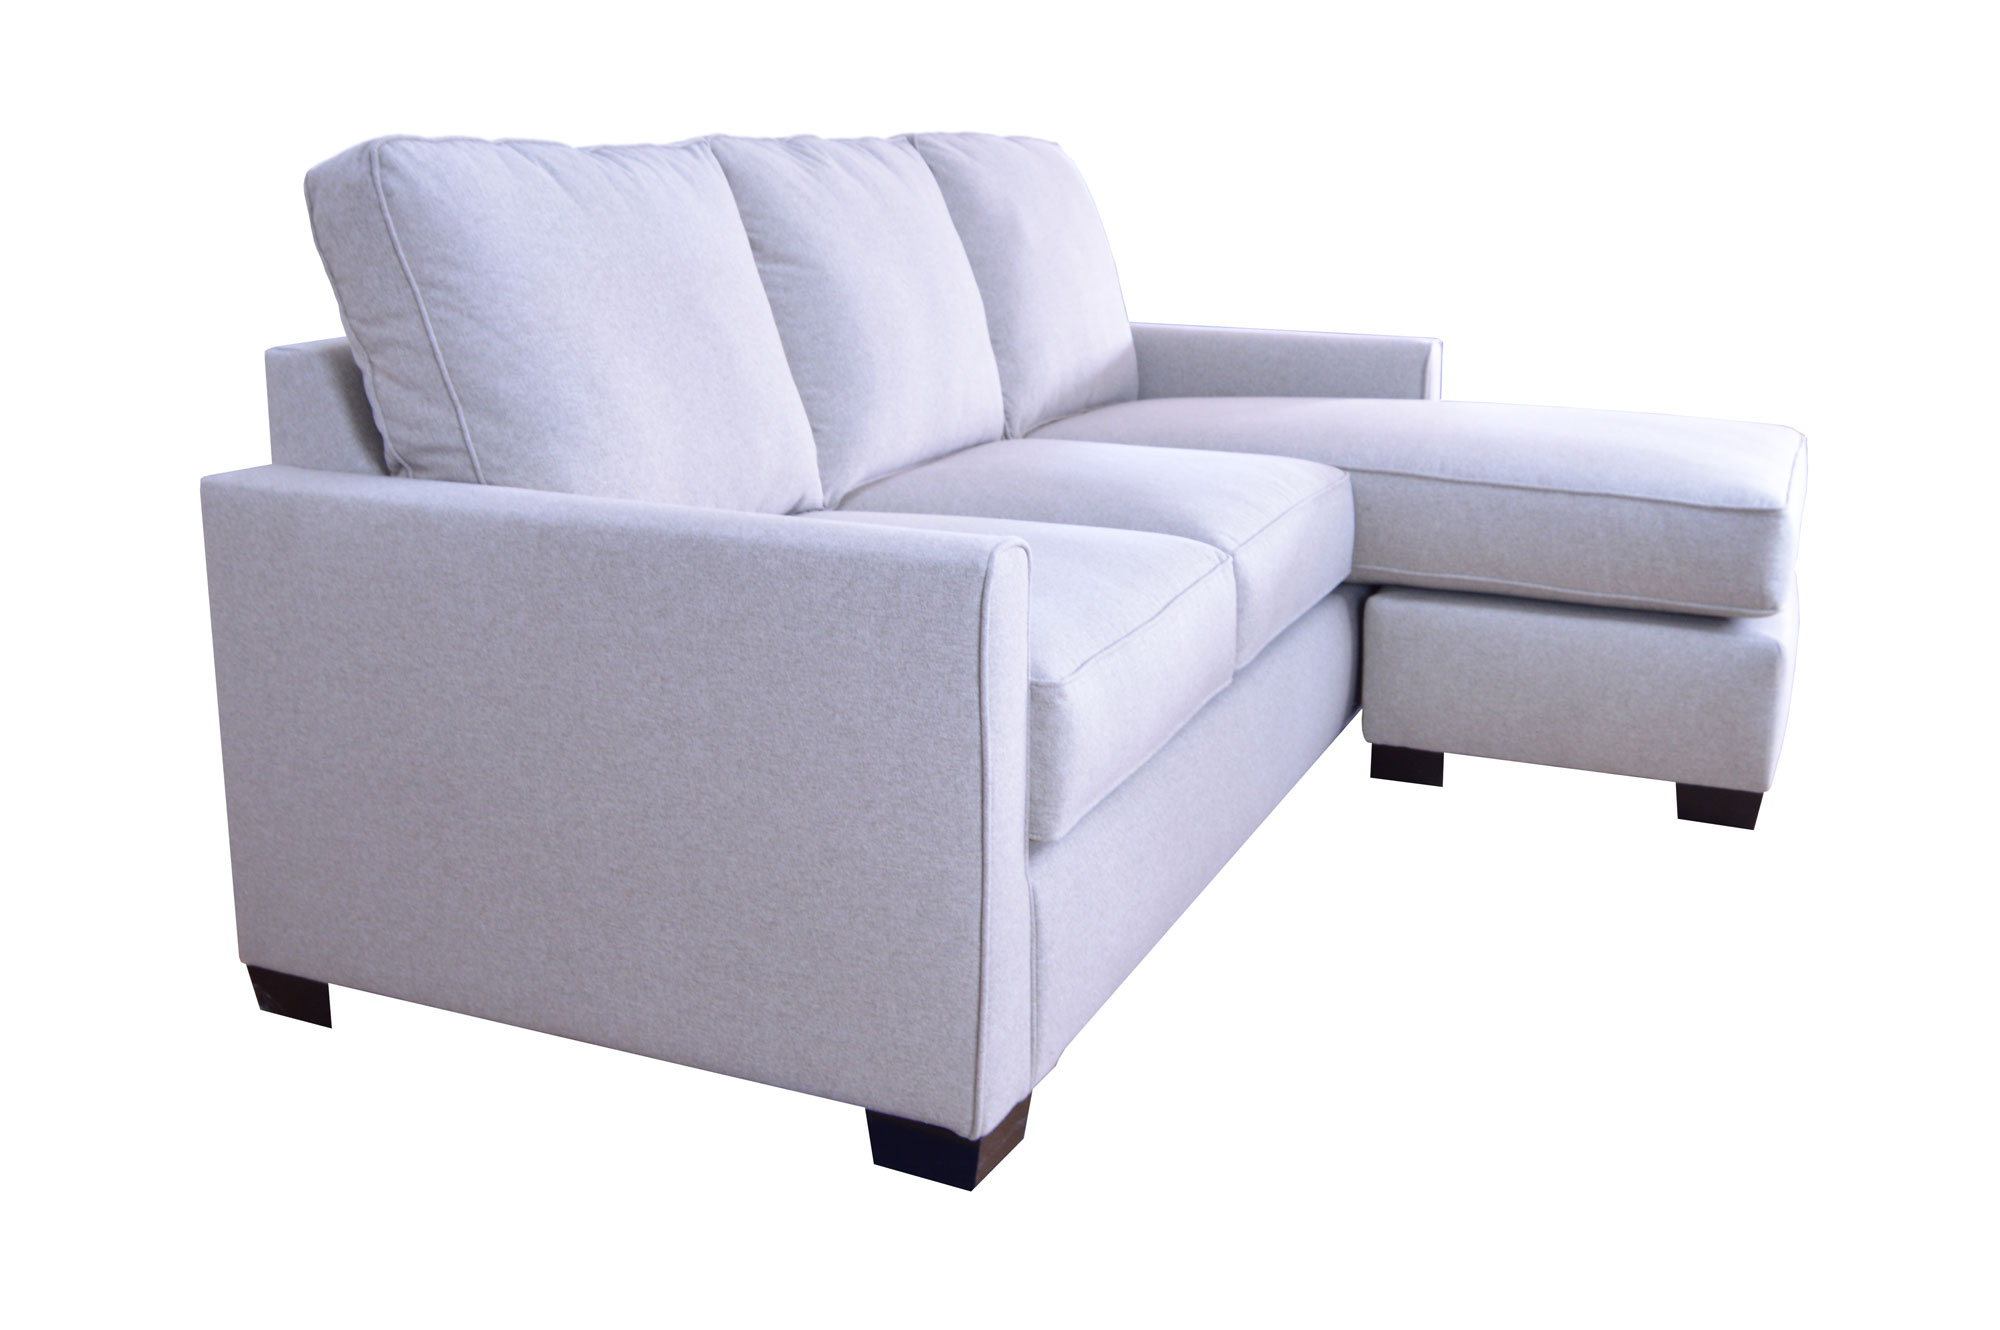 custom sofas for less concord small sofa with removable covers san leandro 4